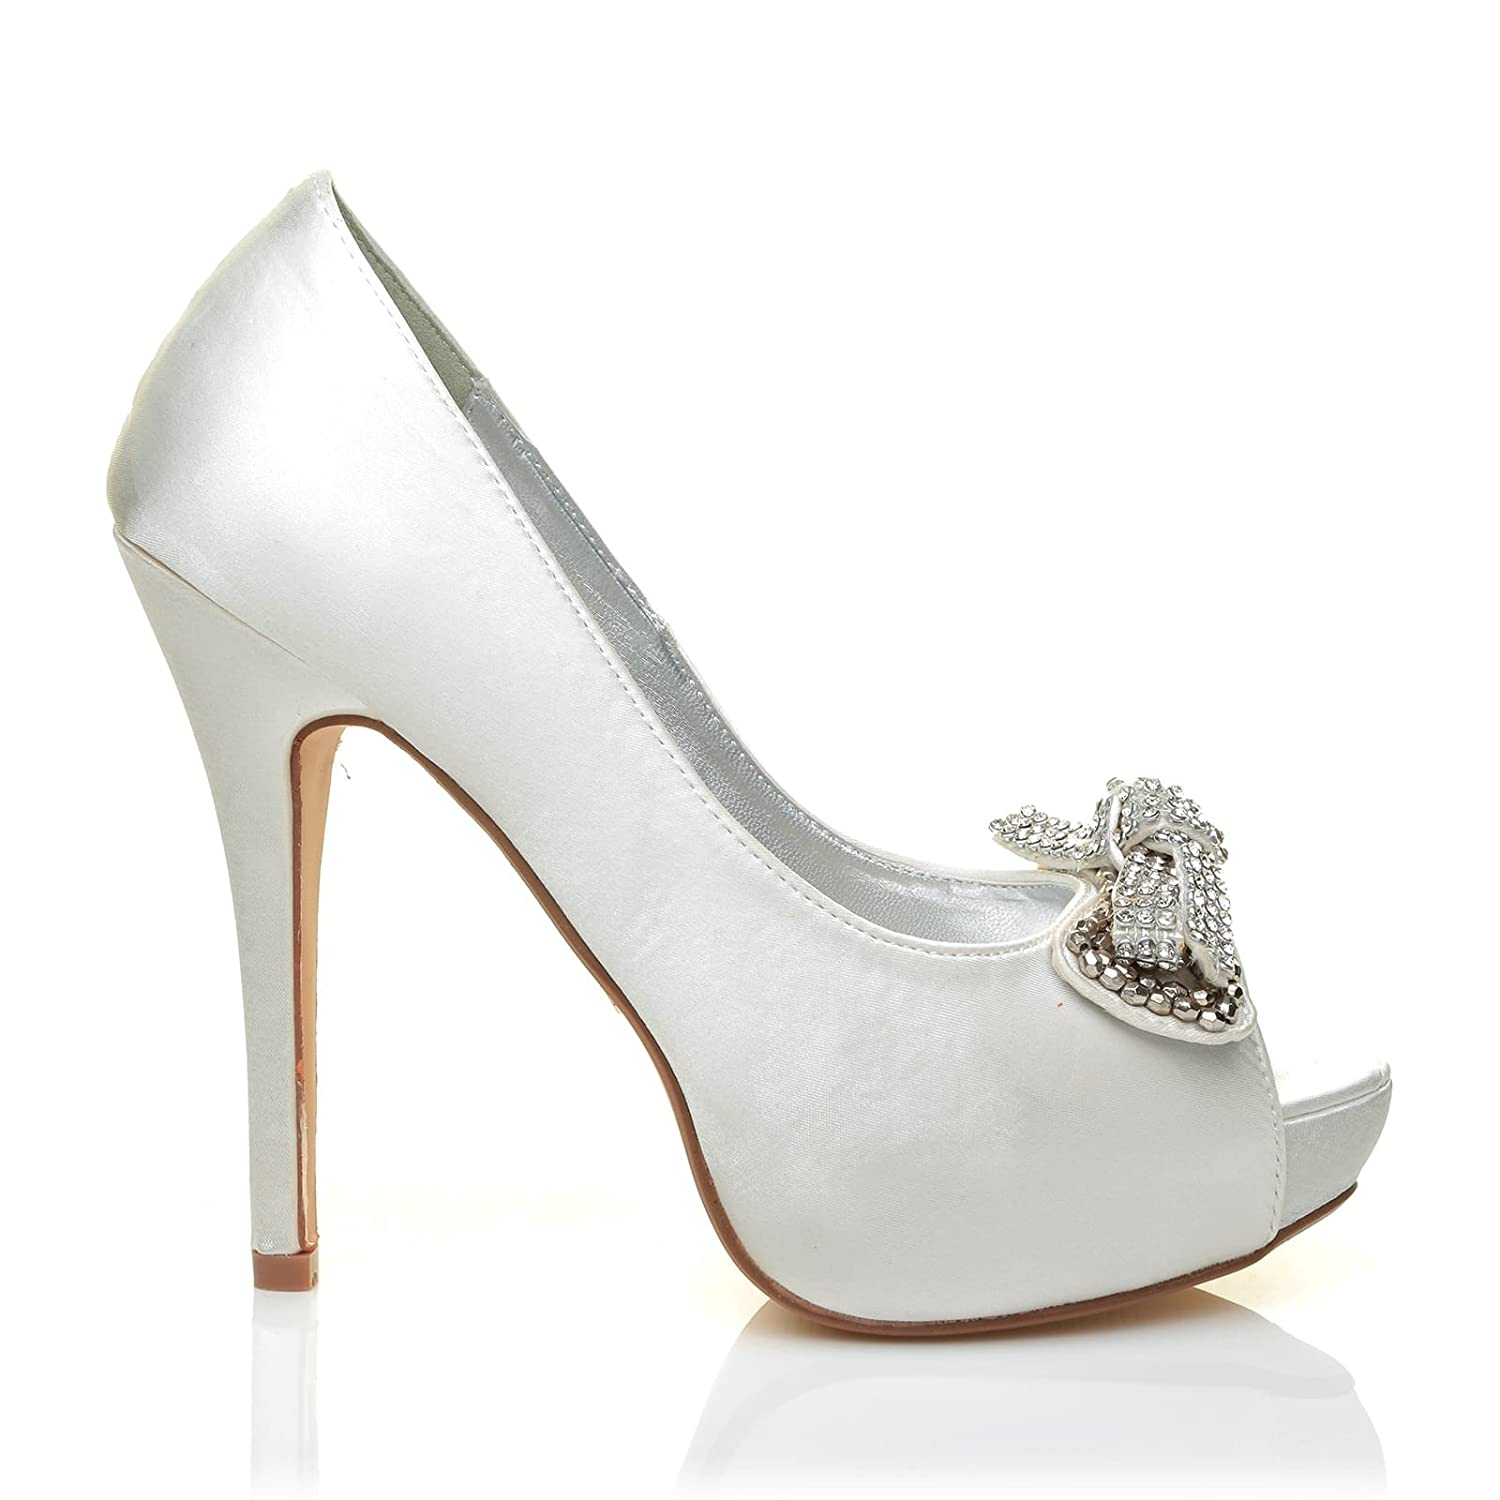 e743399b674 Jewel Ivory Off-White Satin Diamante Bow Designe High Heel Peep Toe  Platform Shoes  Amazon.co.uk  Shoes   Bags